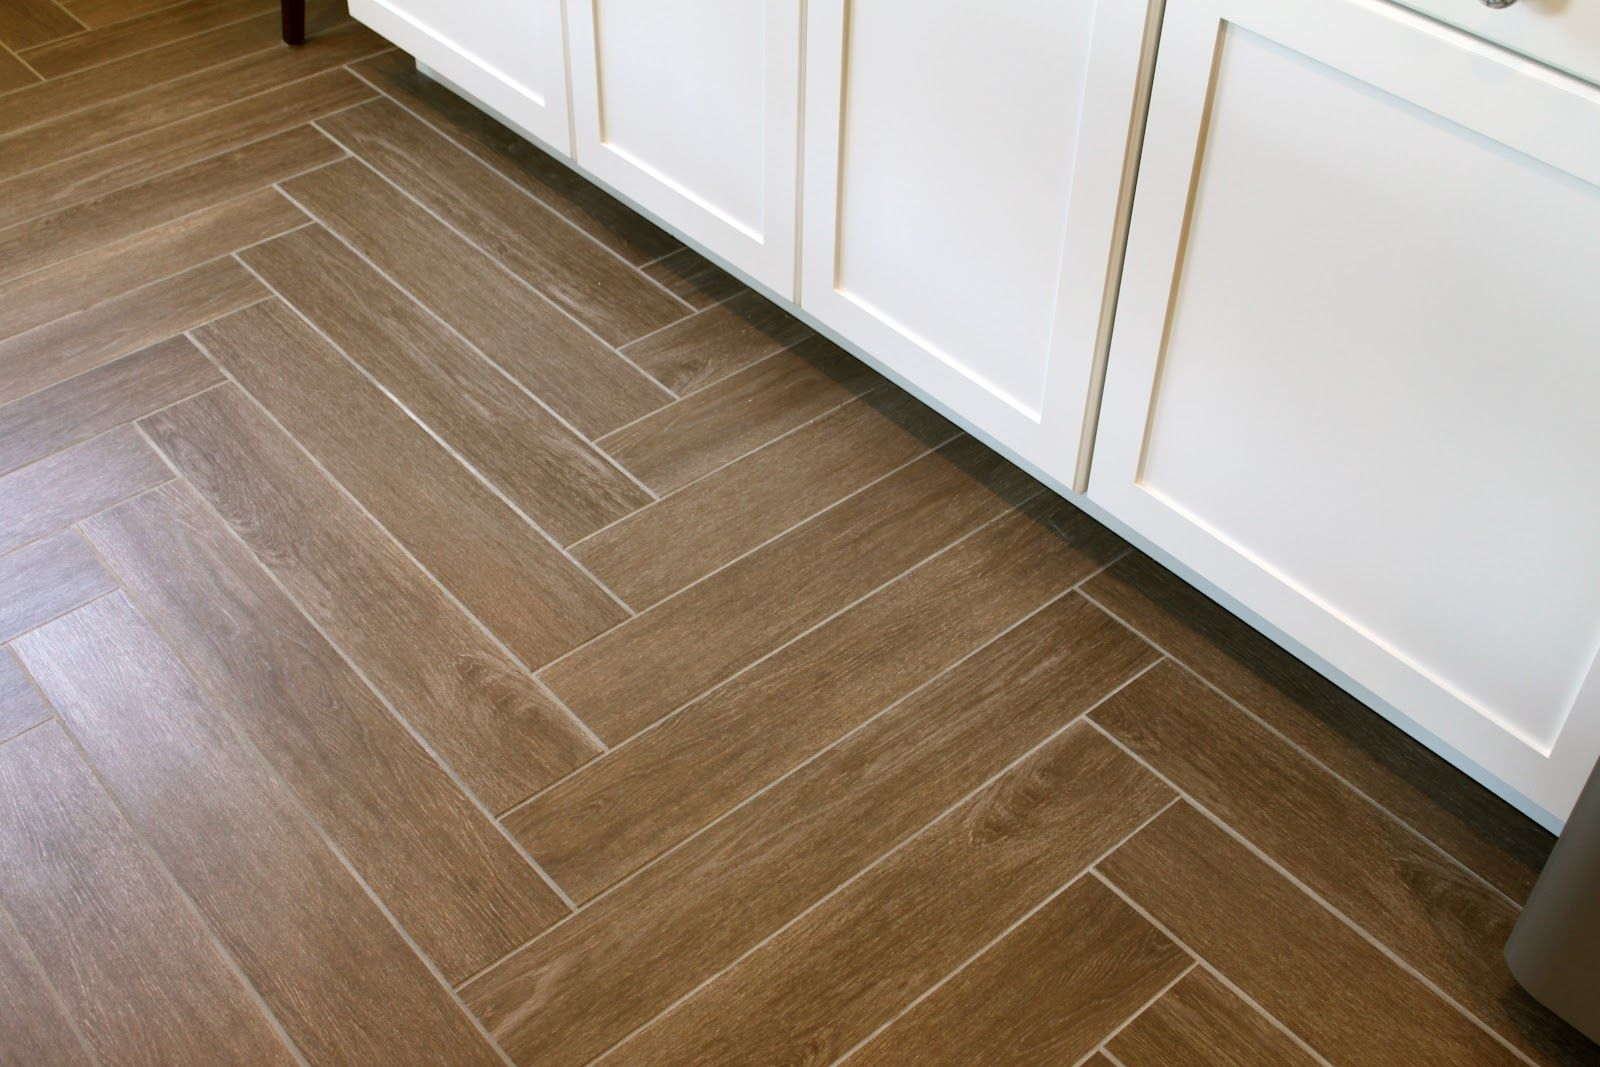 Herringbone wood tile pattern google search wood tile for Wood floor 90 degree turn